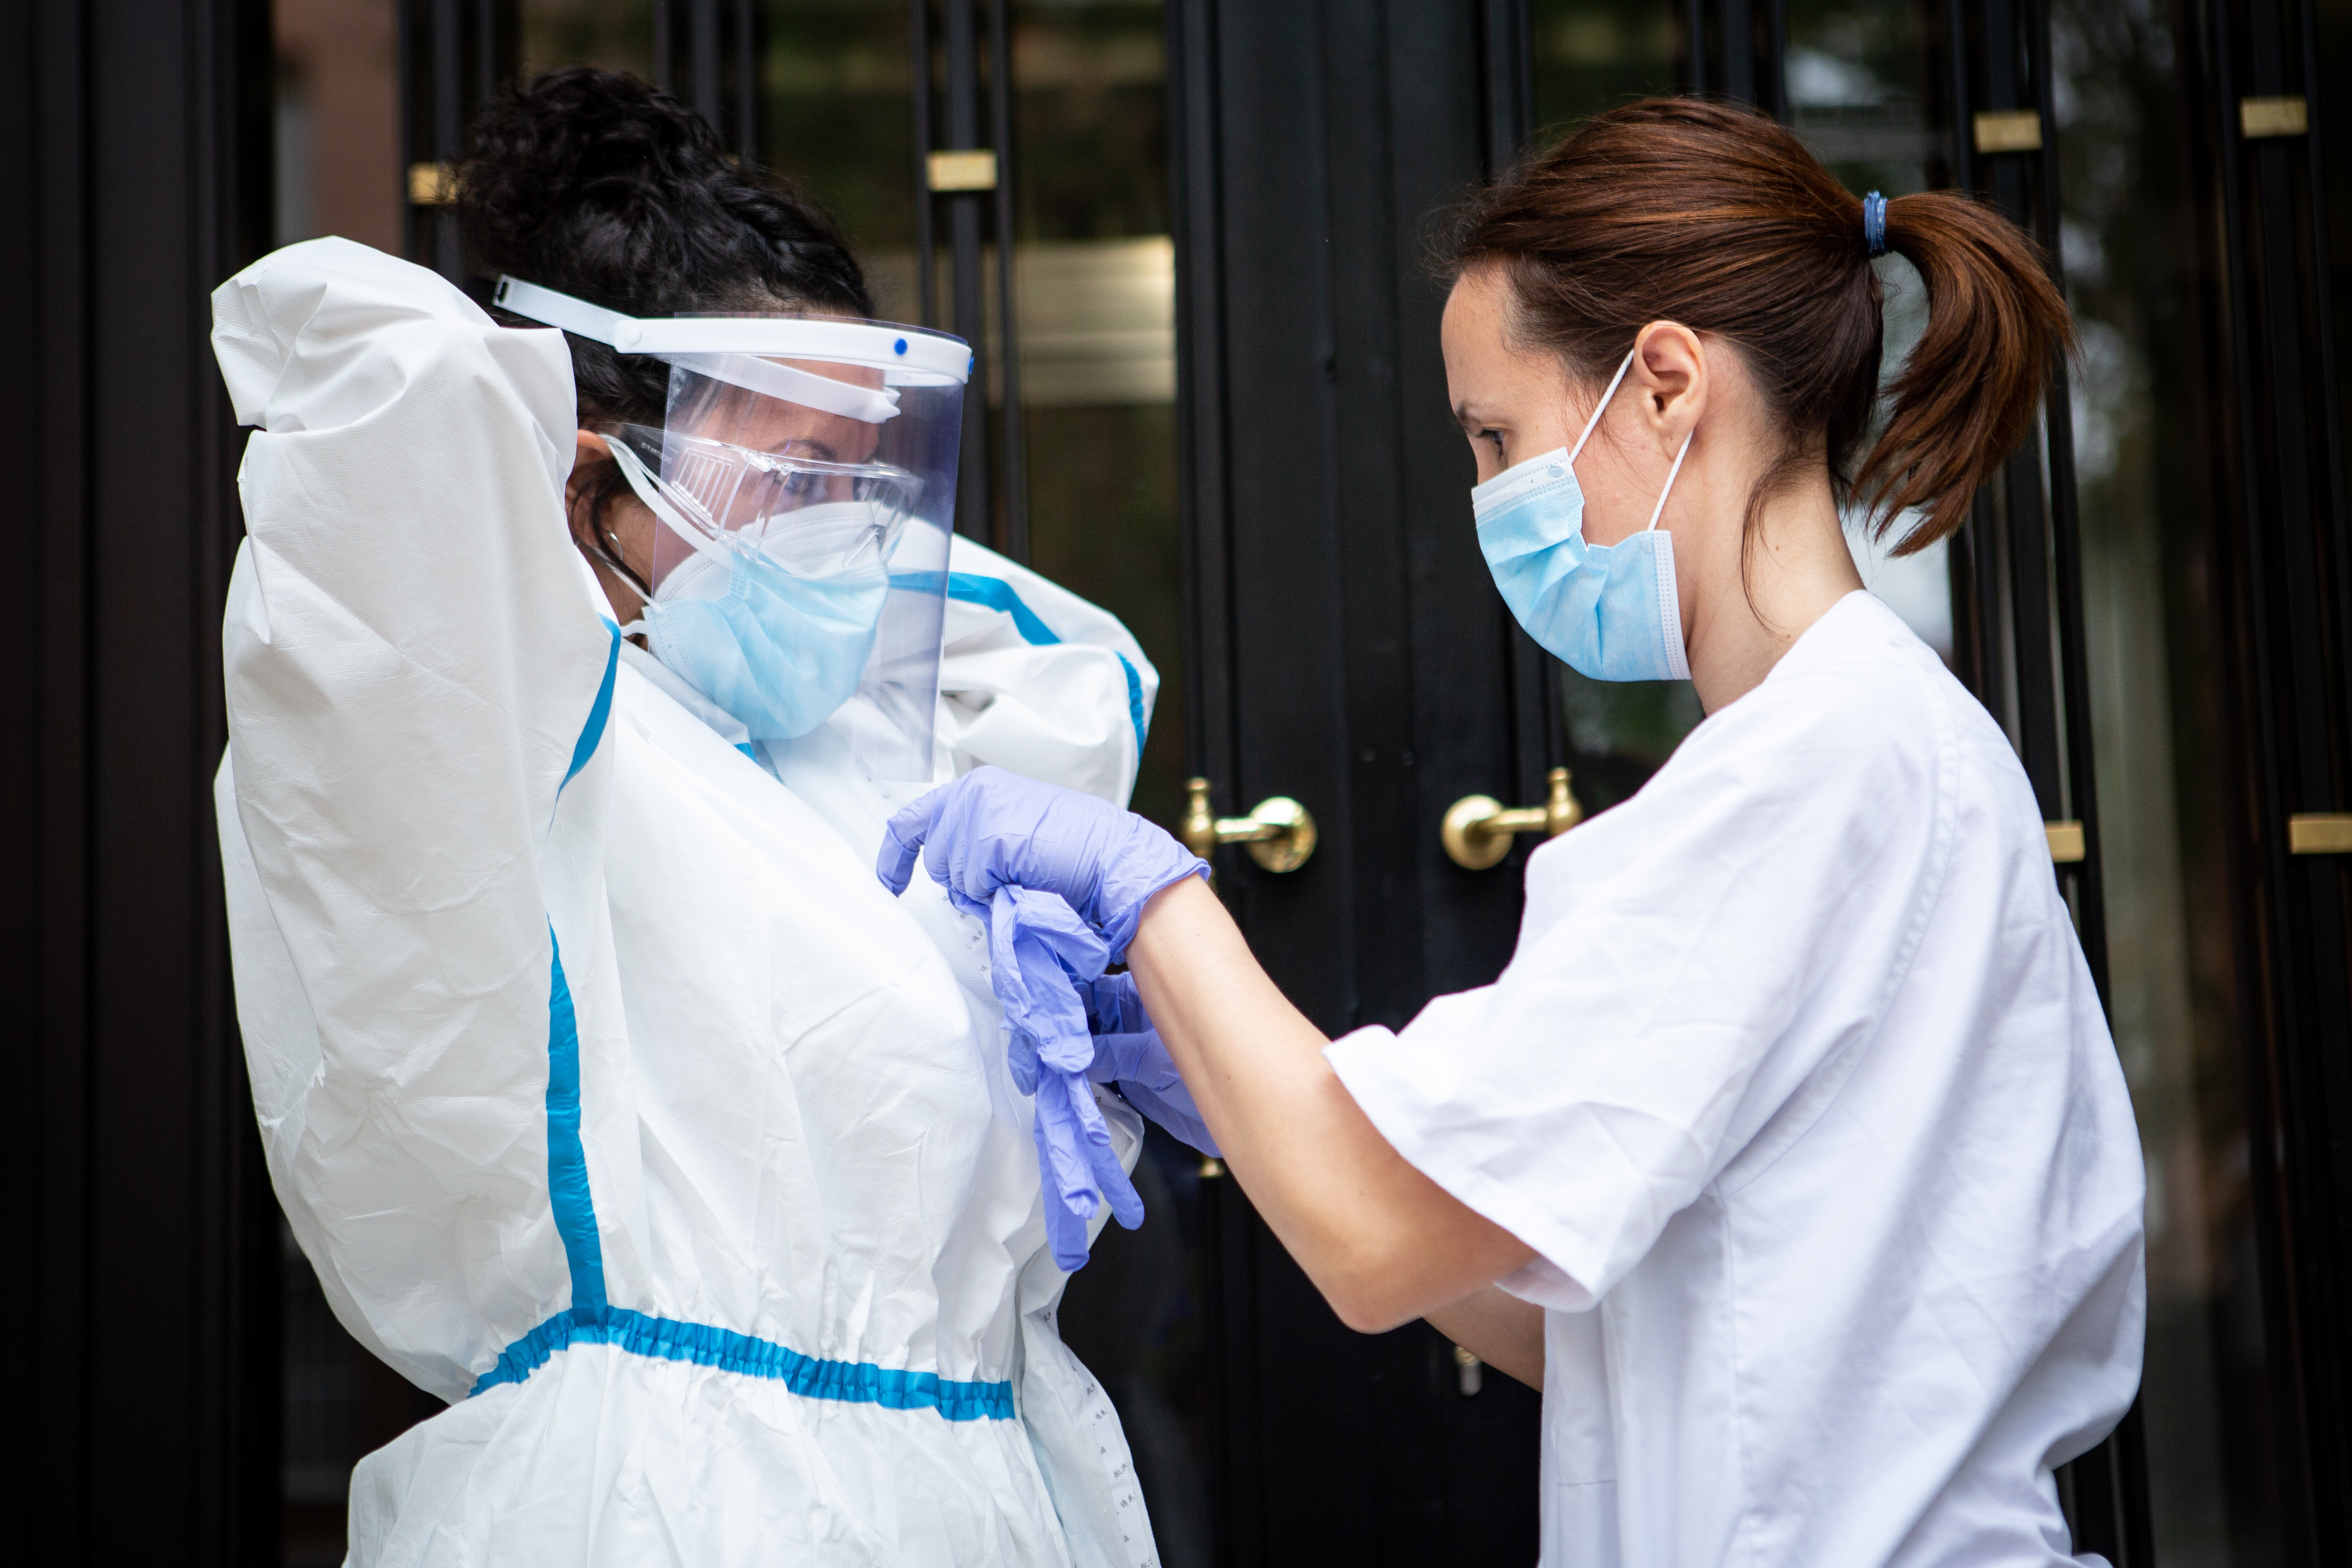 A nurse helps another nurse to put on a personal protective equipment before accessing a patient's home on April 17 in Madrid, Spain.